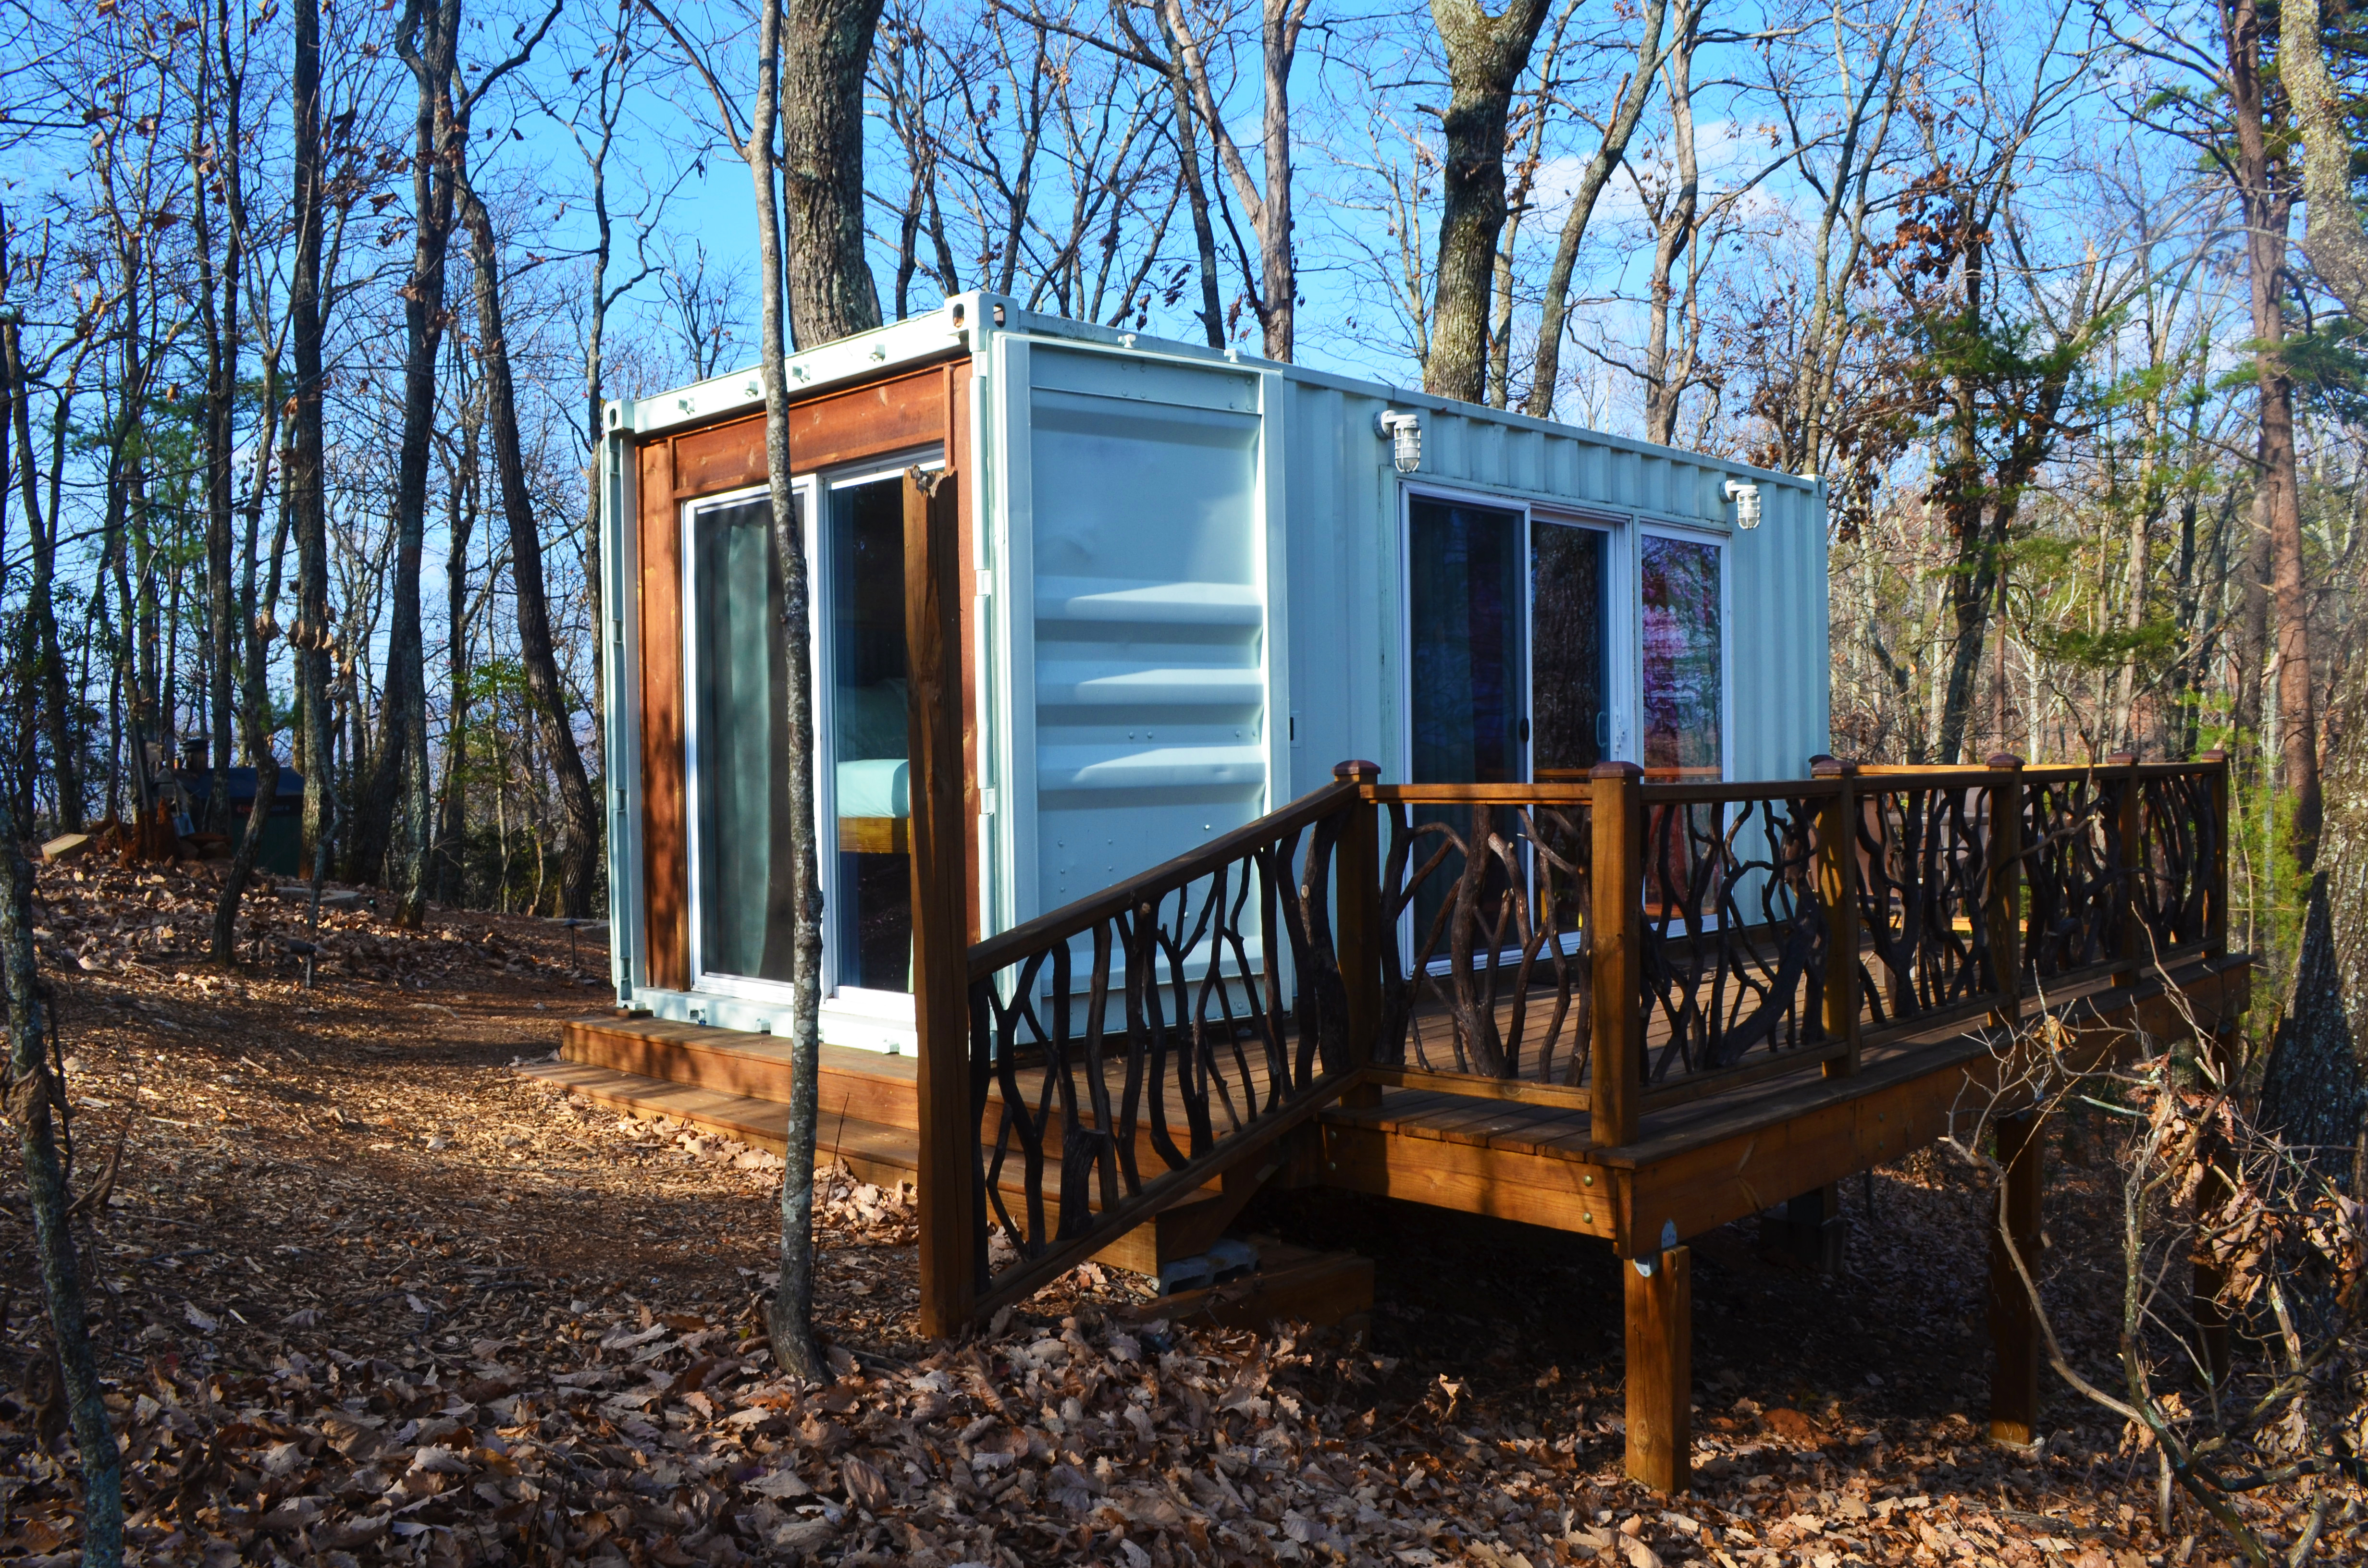 cabin eco hotel accommodations dahlonega barefoot in hills cabins ga ecocabin hotels